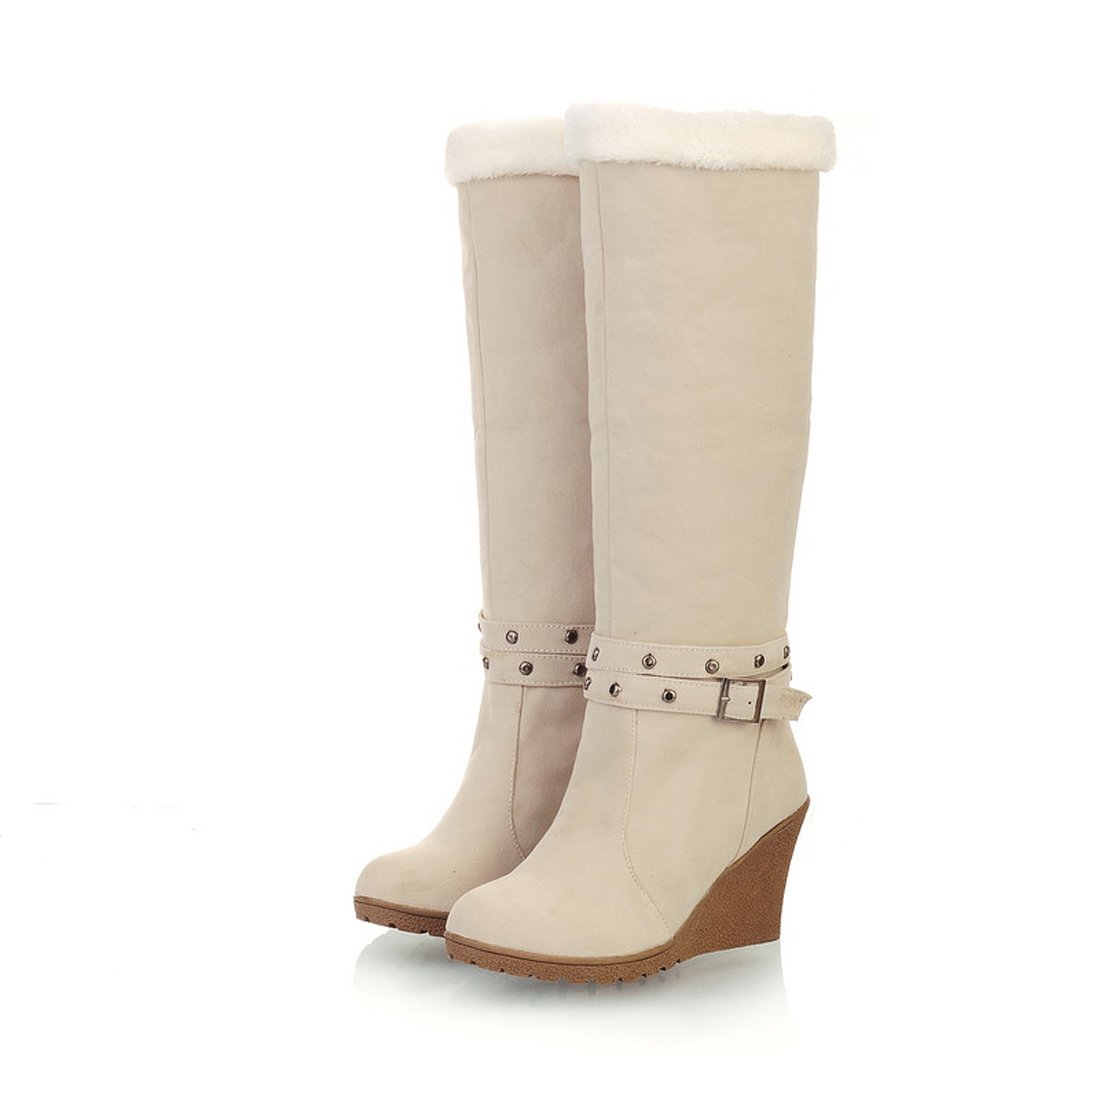 Mostrin Sweet Style Women's Buckle Wedge Heel Fur Boots Winter Warm Suede Fold-Over Snow Boots